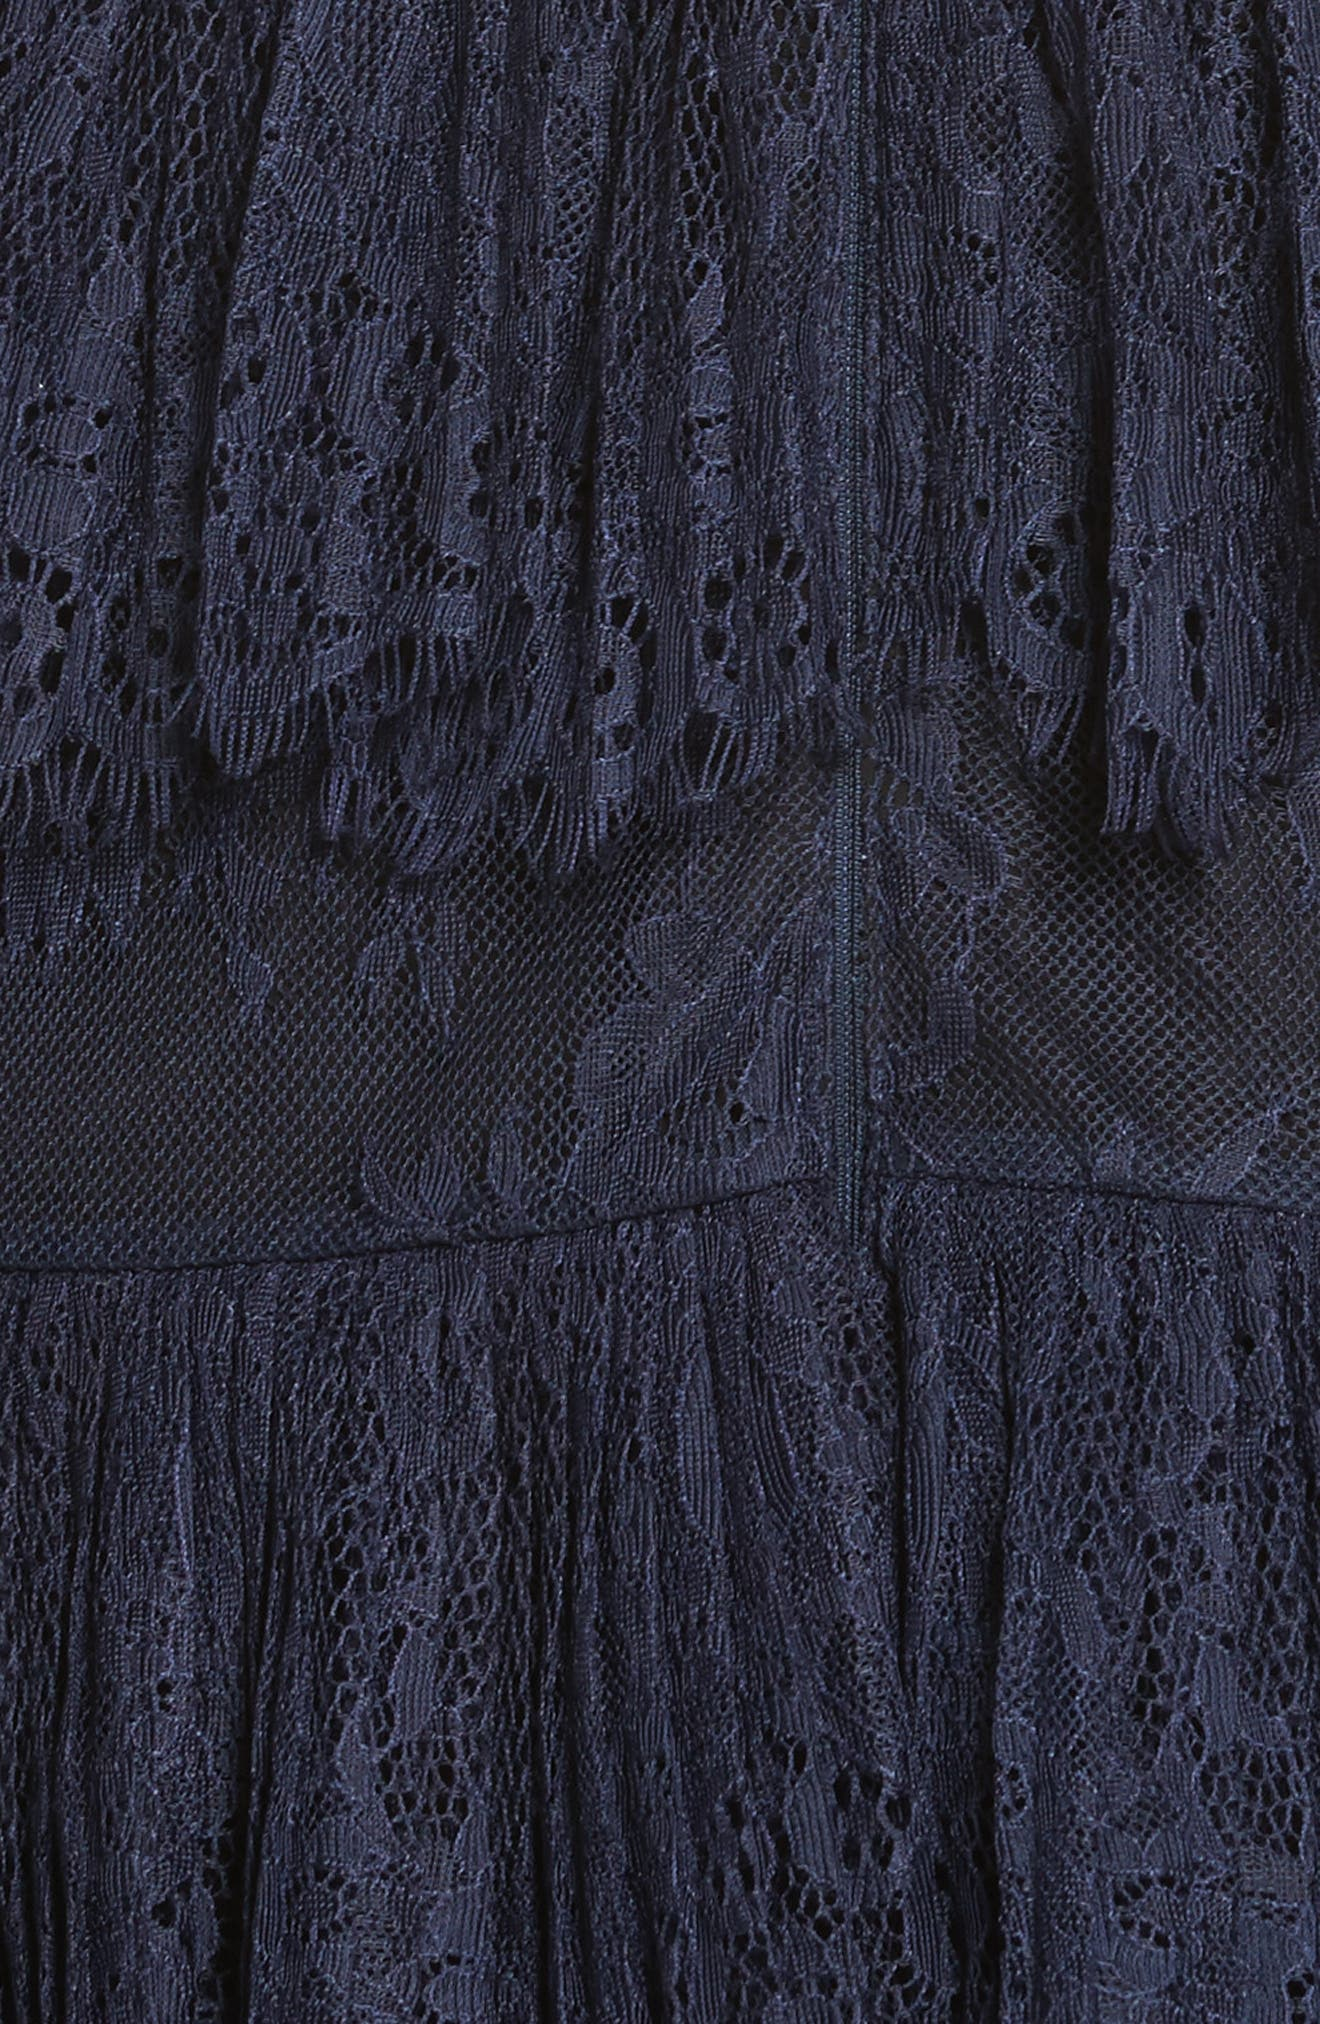 Pleated Lace Dress,                             Alternate thumbnail 5, color,                             400